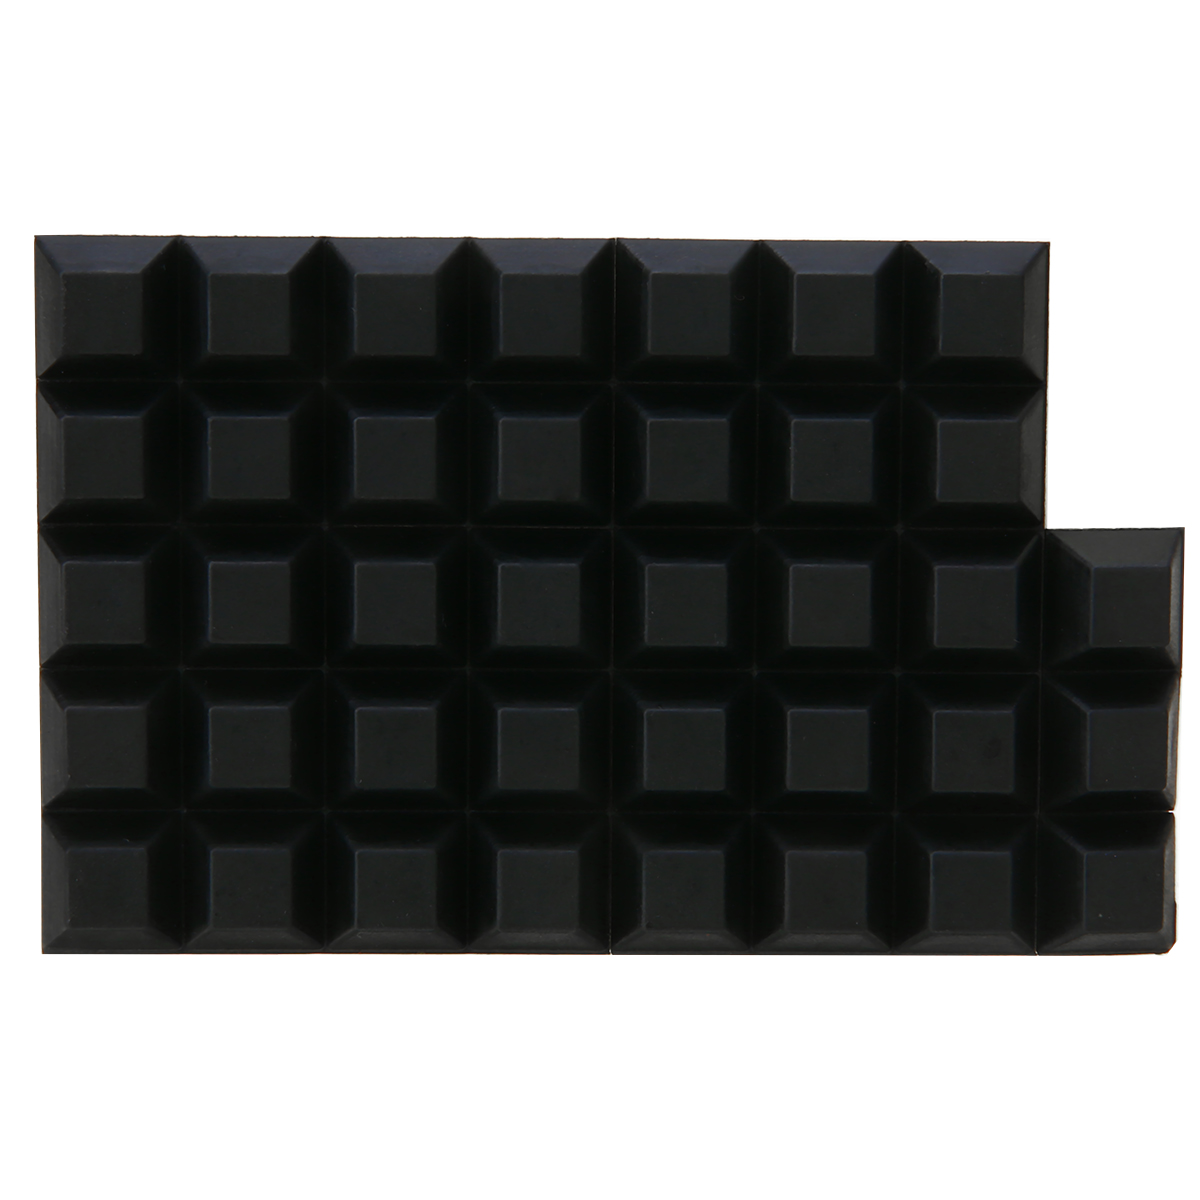 40pcs/Bag Home Self Adhesive Rubber Buffer Pads Black Silicone Bumper Stop Anti Slip Door Buffer Pad Home Cabinet Accessory Tool